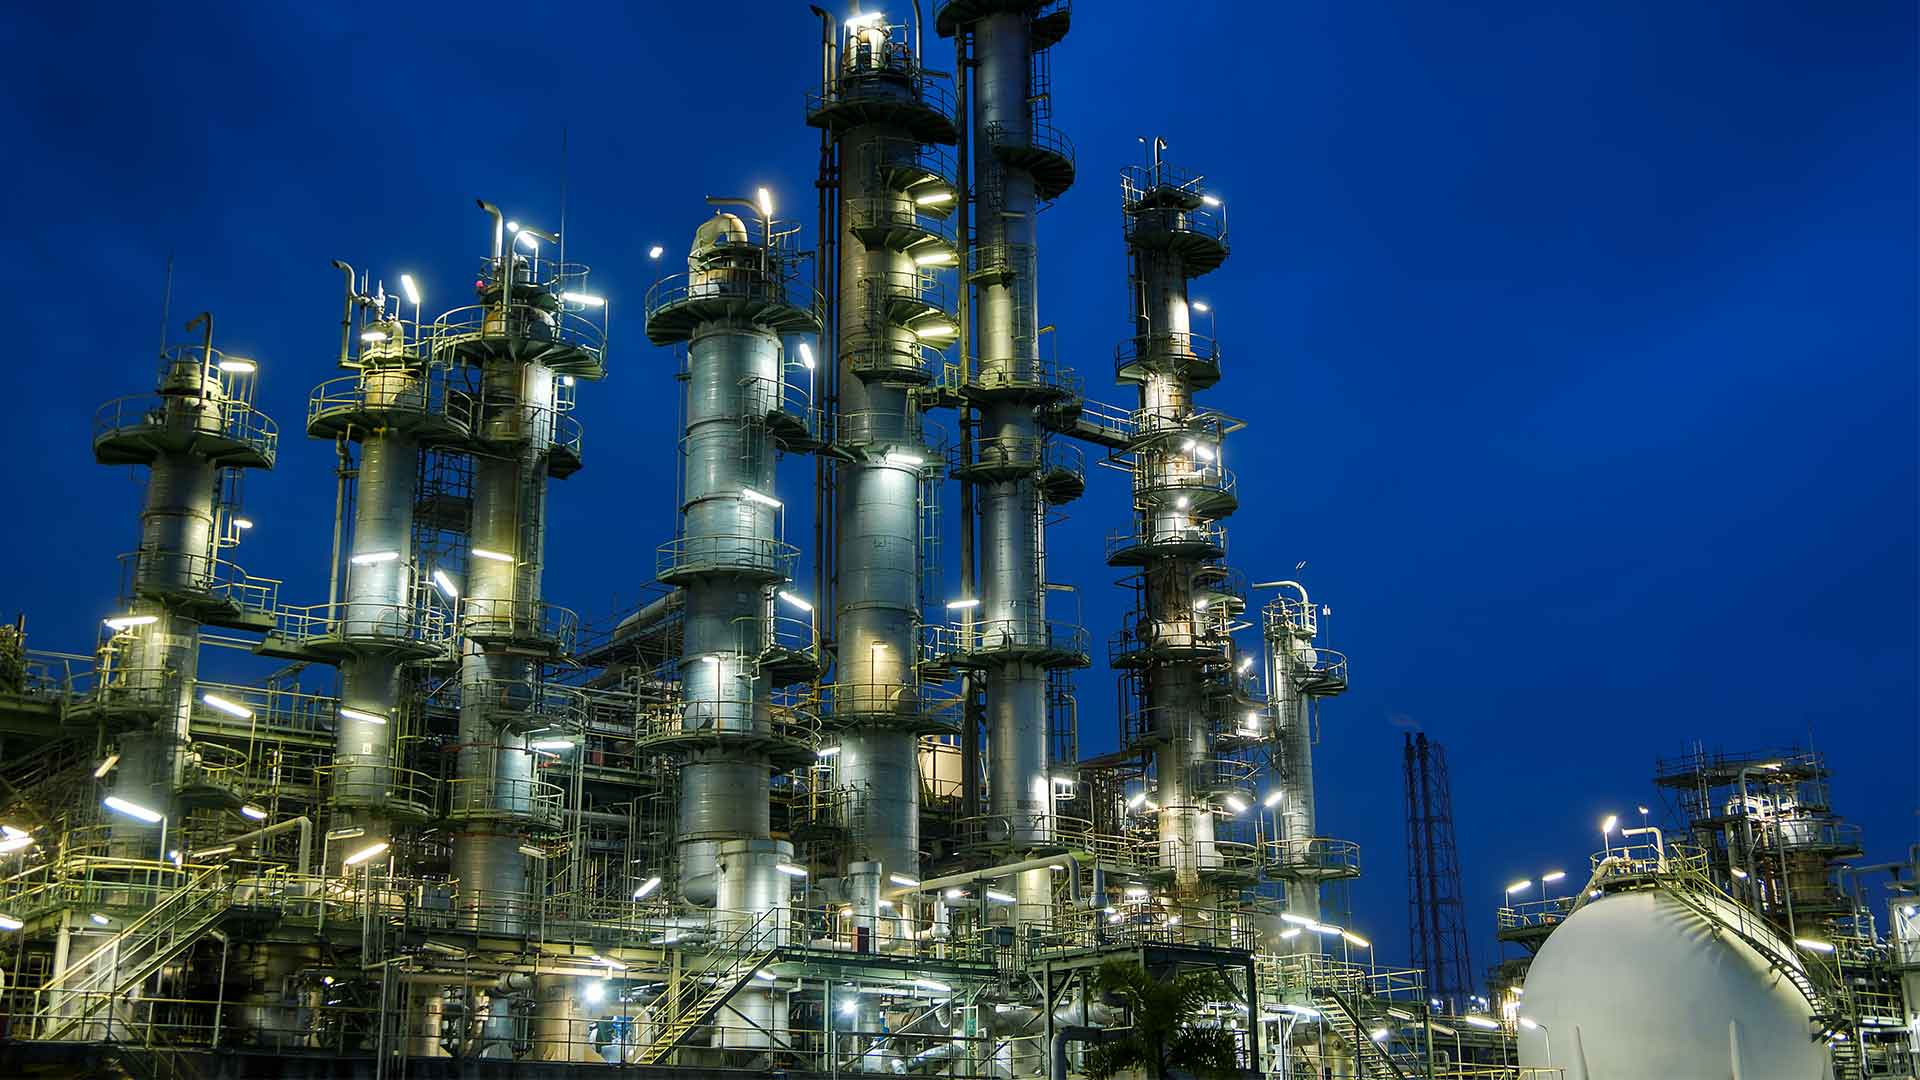 Boron as an energy carrier to increase efficiency